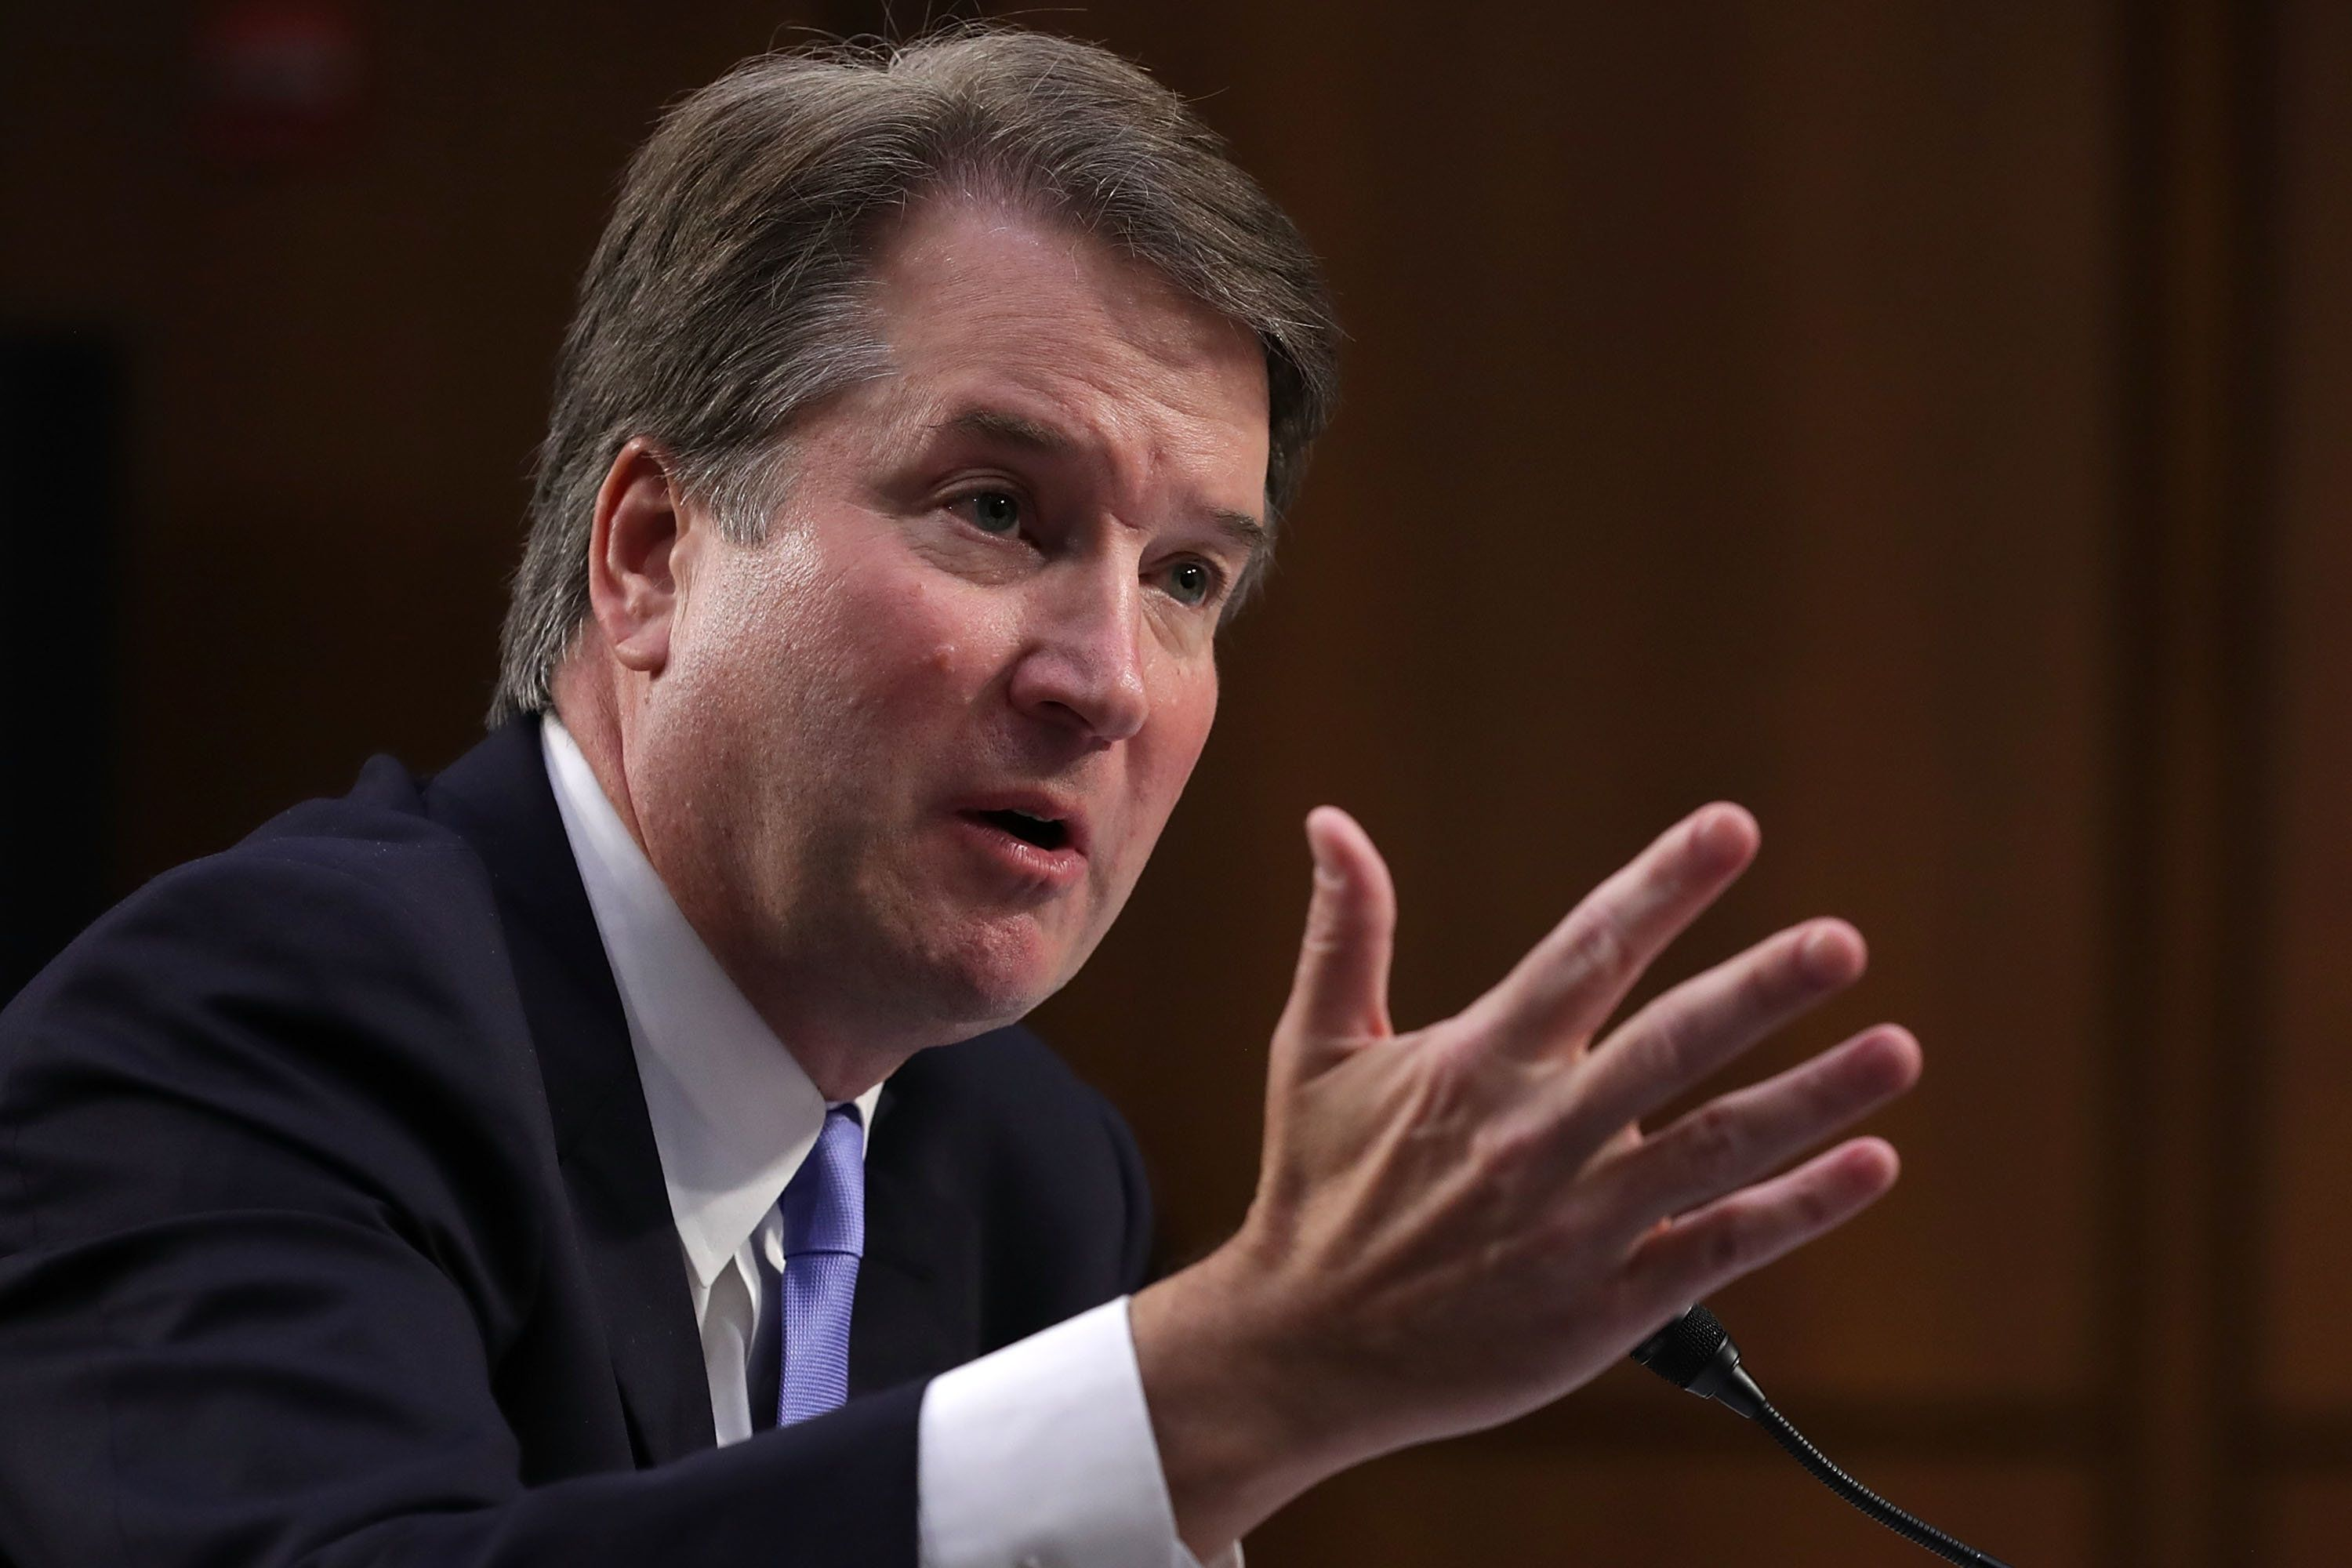 Senate concludes Brett Kavanaugh hearing; confirmation likely